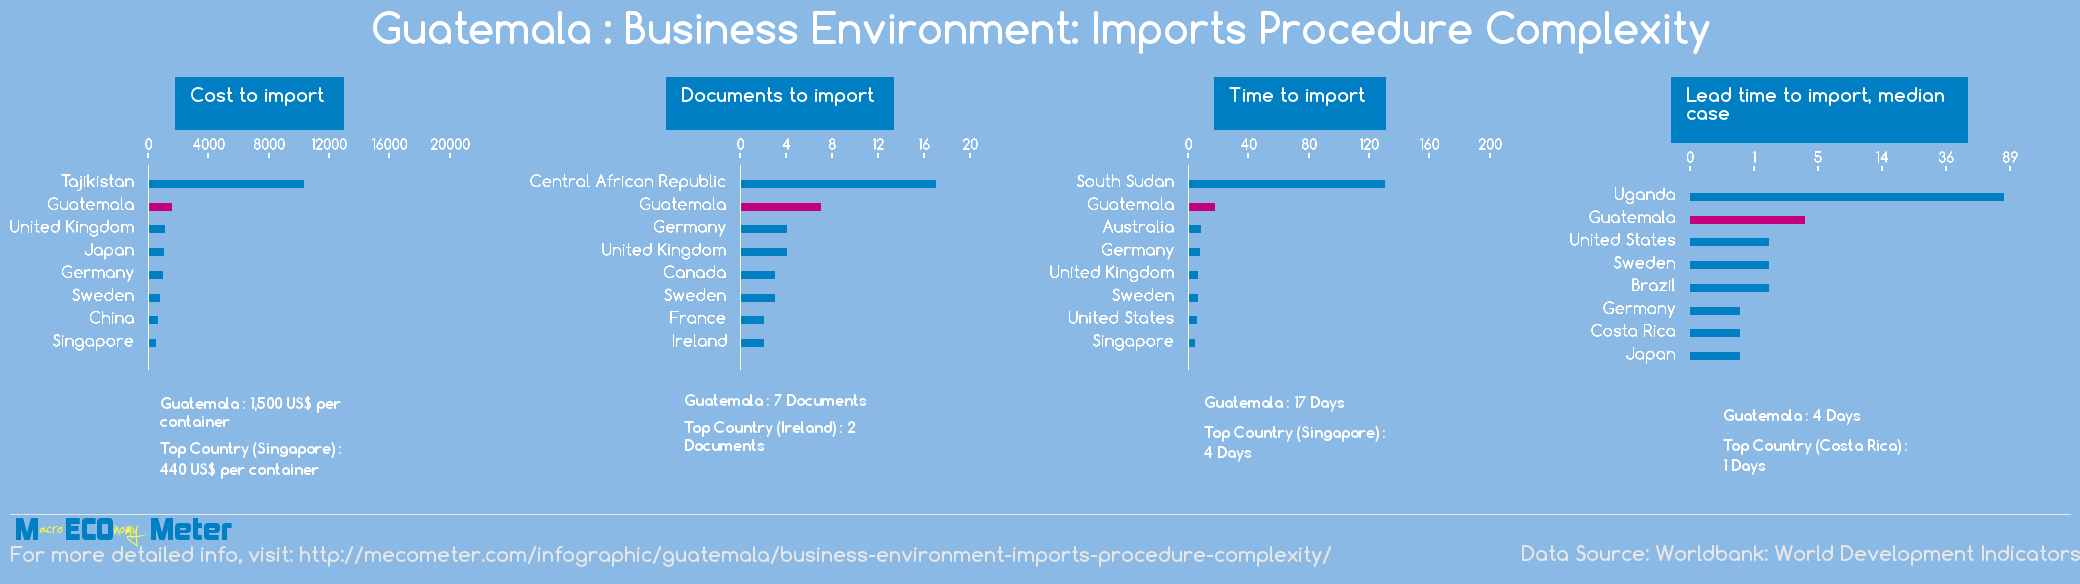 Guatemala : Business Environment: Imports Procedure Complexity